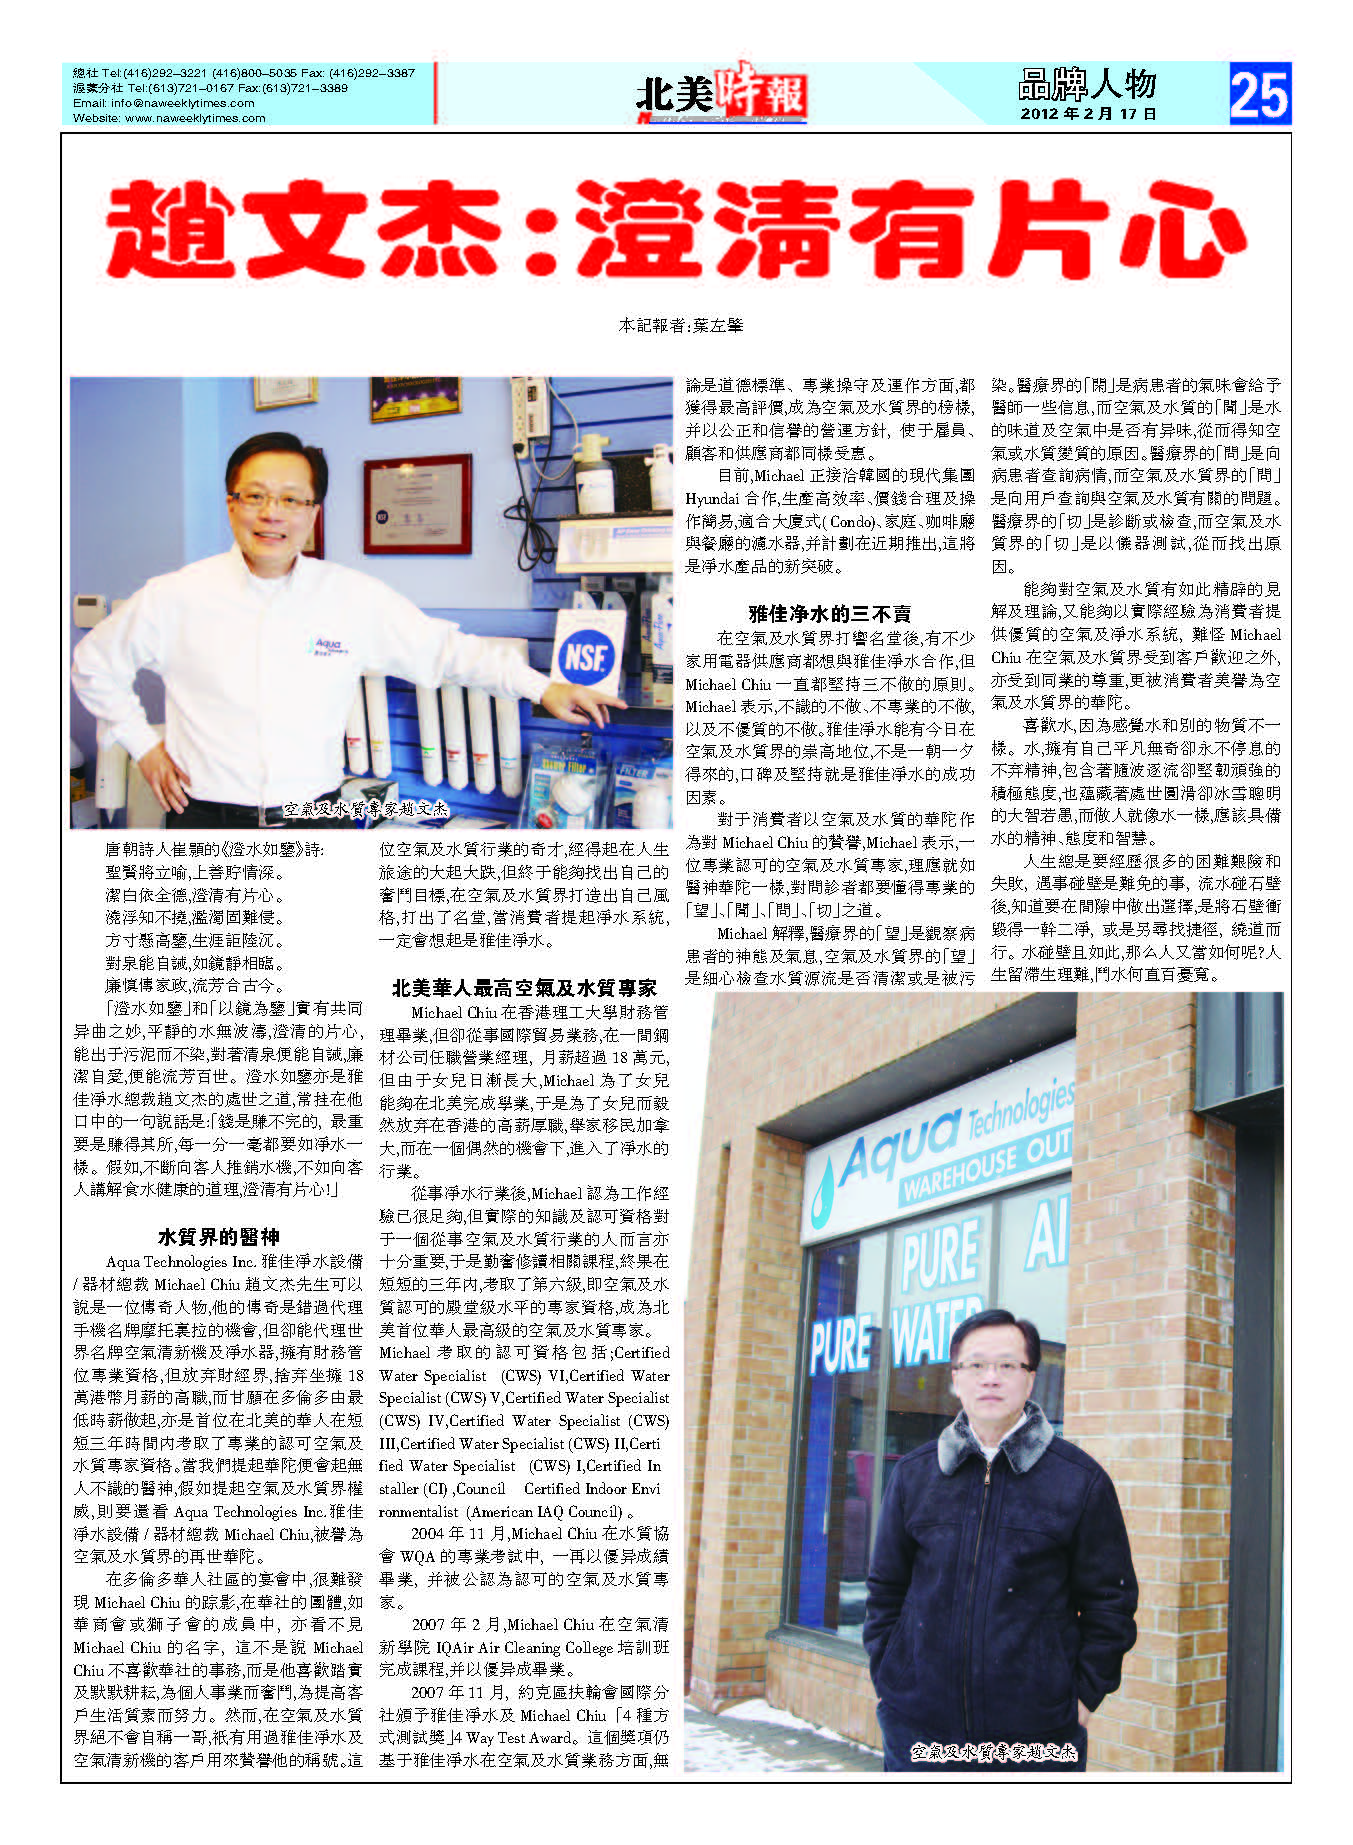 North America Weekly Times has published an interview with Michael Chiu, president of our company.